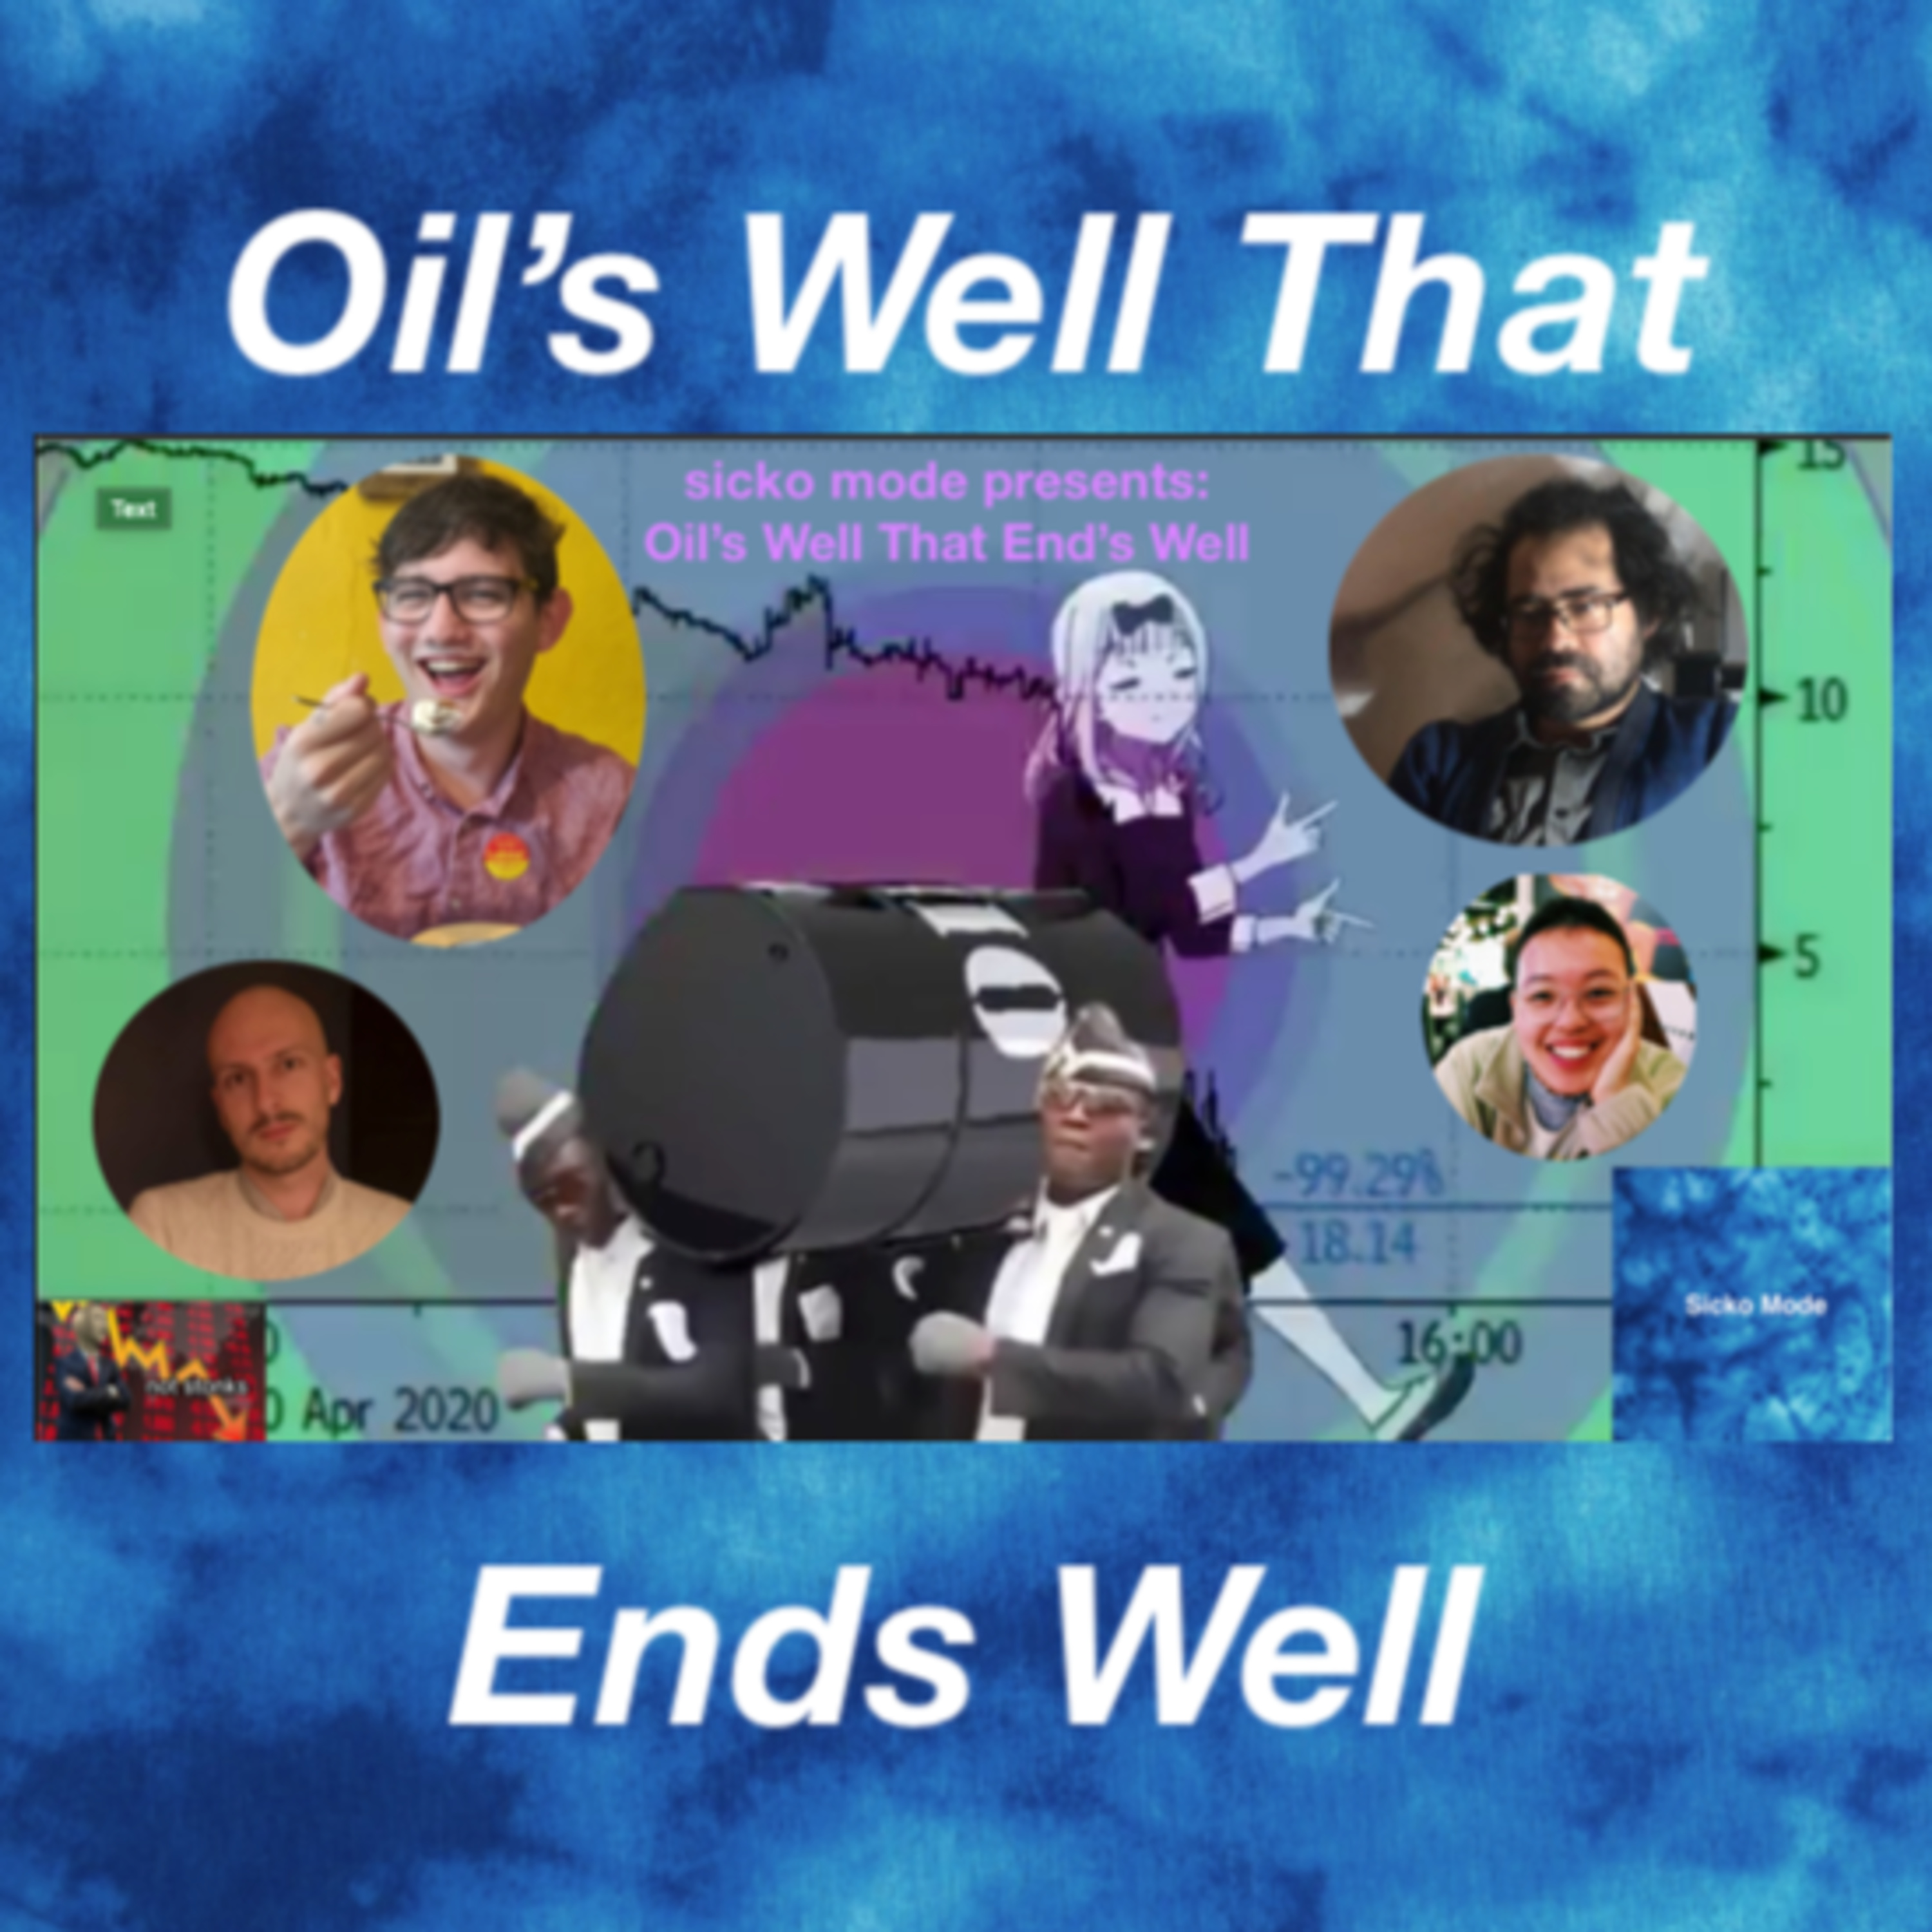 Episode 8: Oil's Well That End's Well